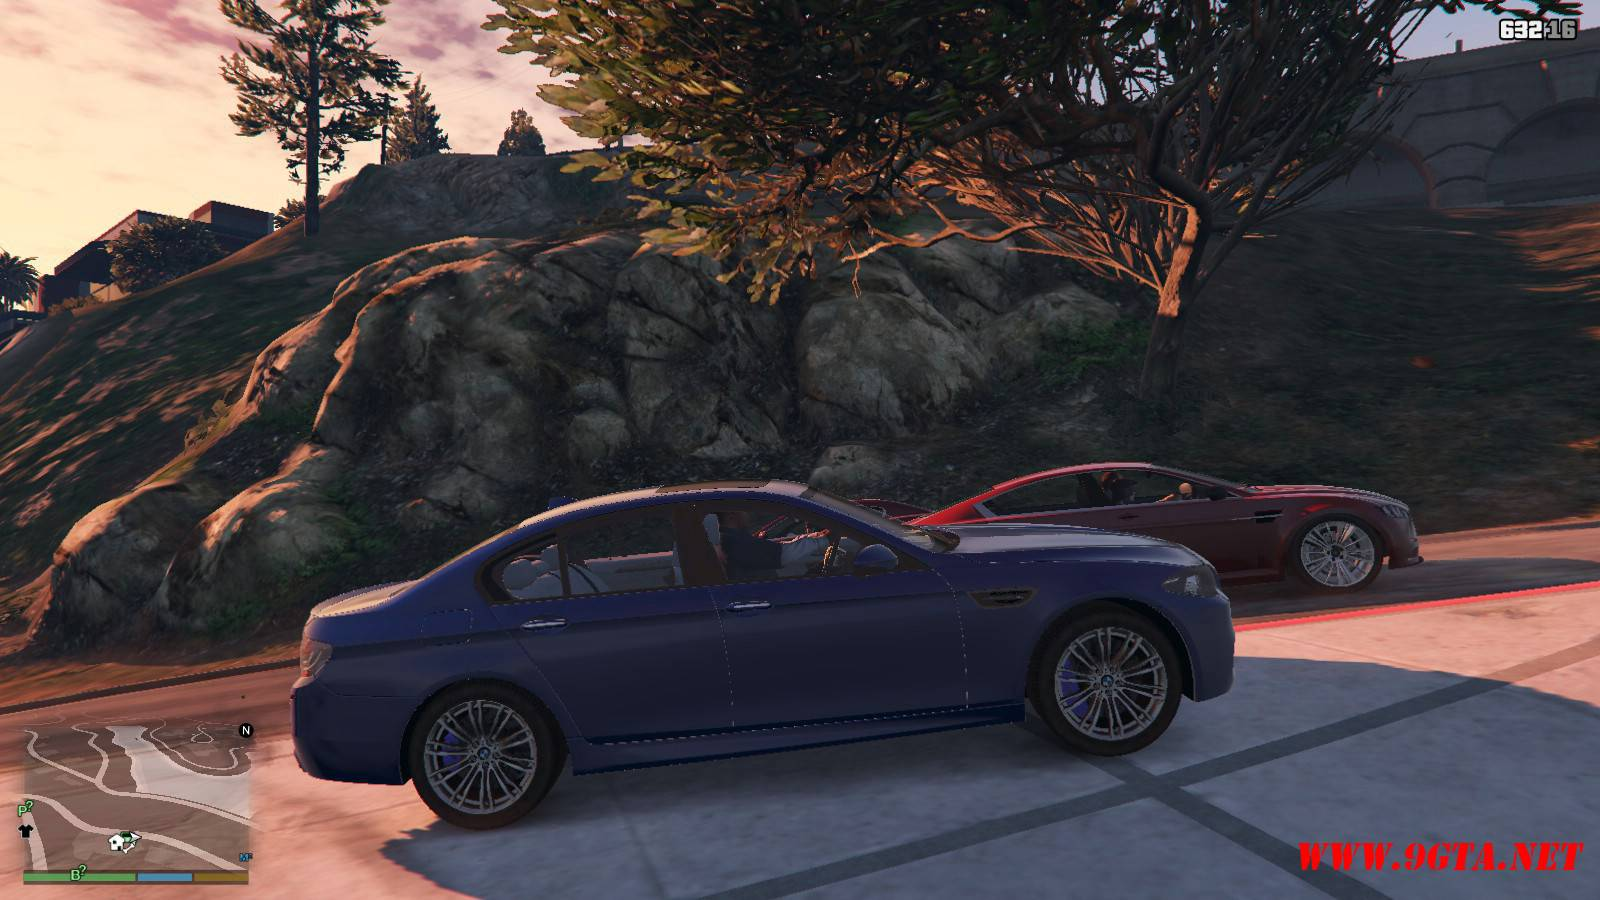 2012 BMW M5 F10 Mod For GTA5 (8)